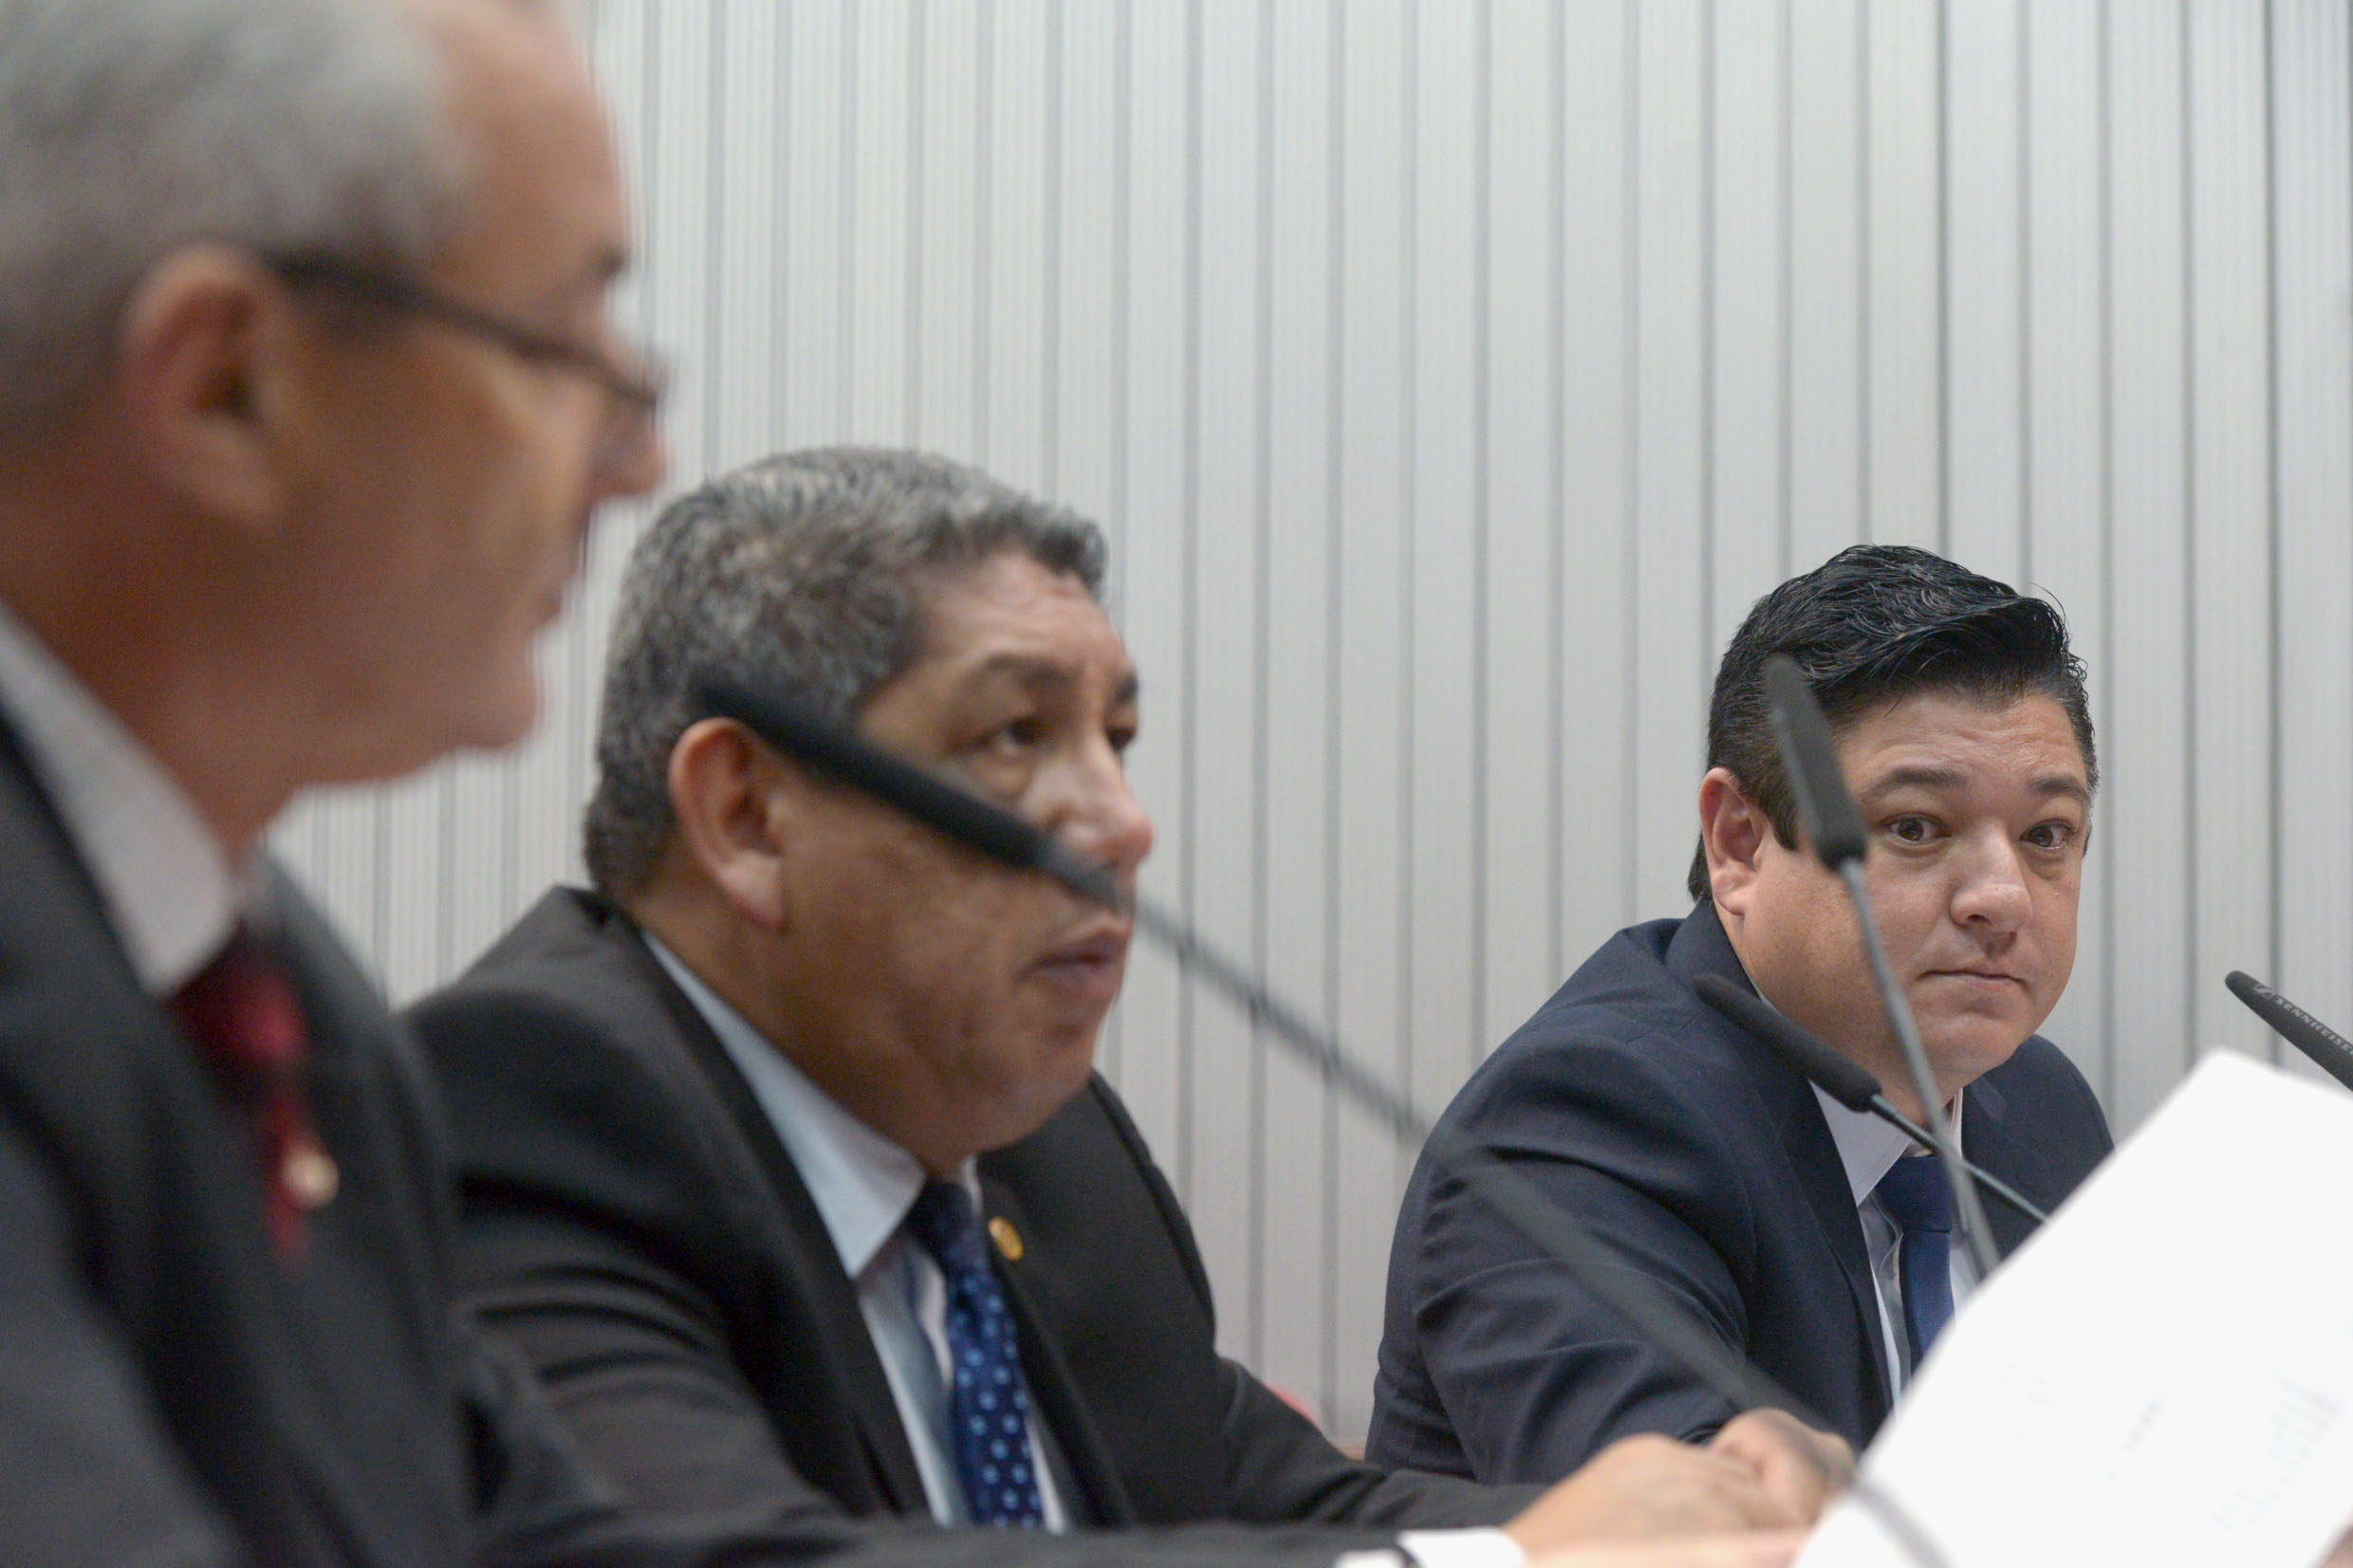 Parlamentares na comissão<a style='float:right' href='https://www3.al.sp.gov.br/repositorio/noticia/N-05-2019/fg234182.jpg' target=_blank><img src='/_img/material-file-download-white.png' width='14px' alt='Clique para baixar a imagem'></a>